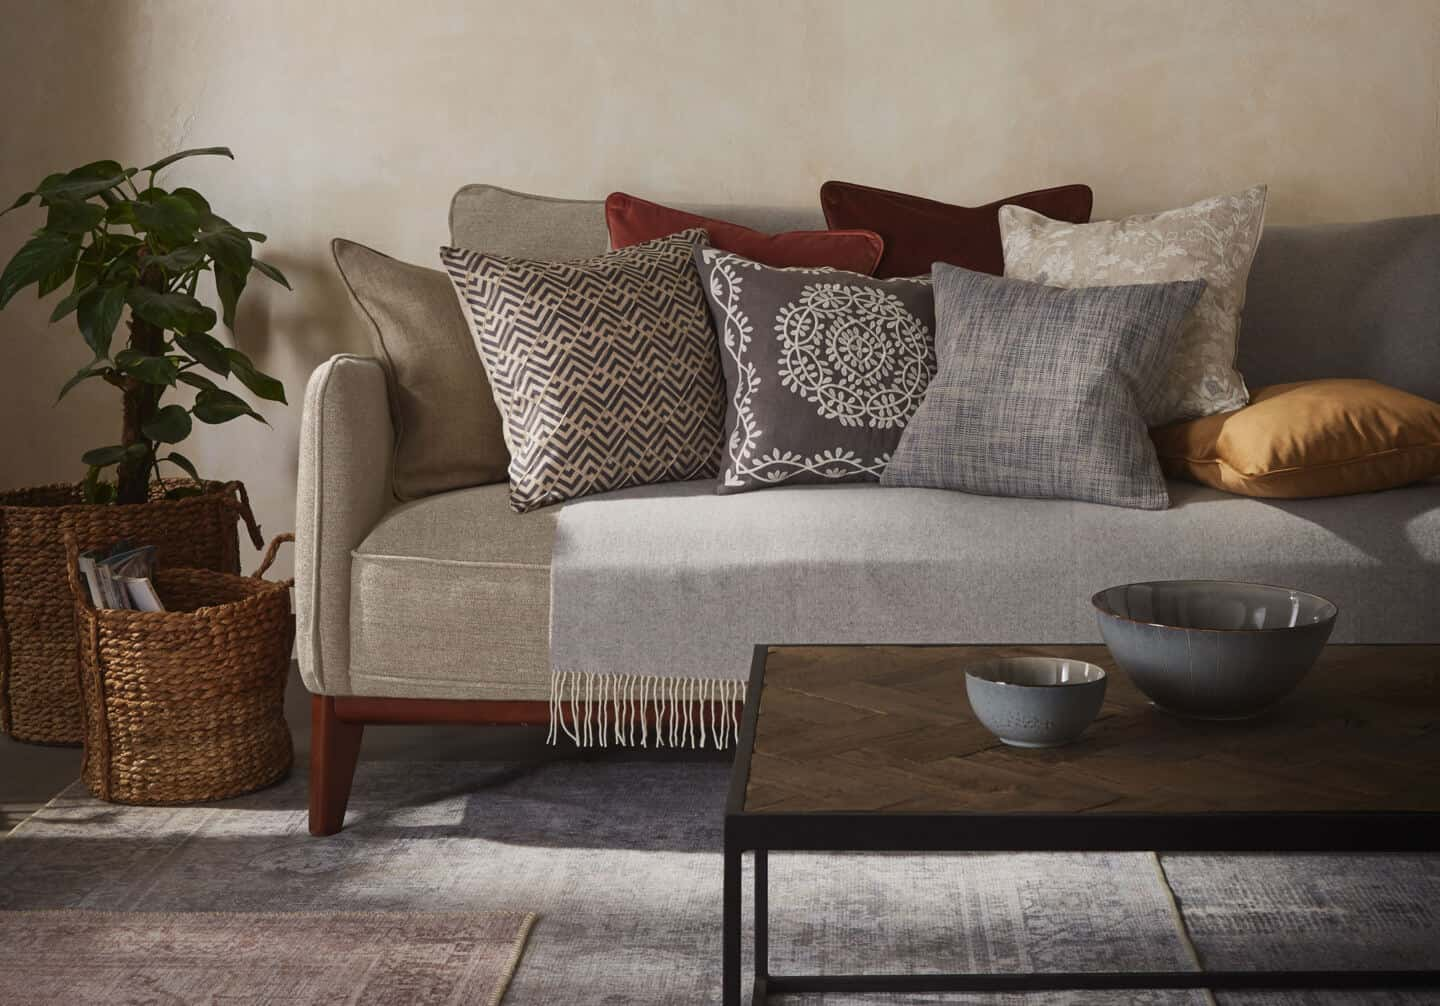 Textured Lives. Using texture in interiors to bring your home to life.  A sofa is behind a coffee table whoch is on a rug. The sofa is covered in textured cushions in an earthy colour palette